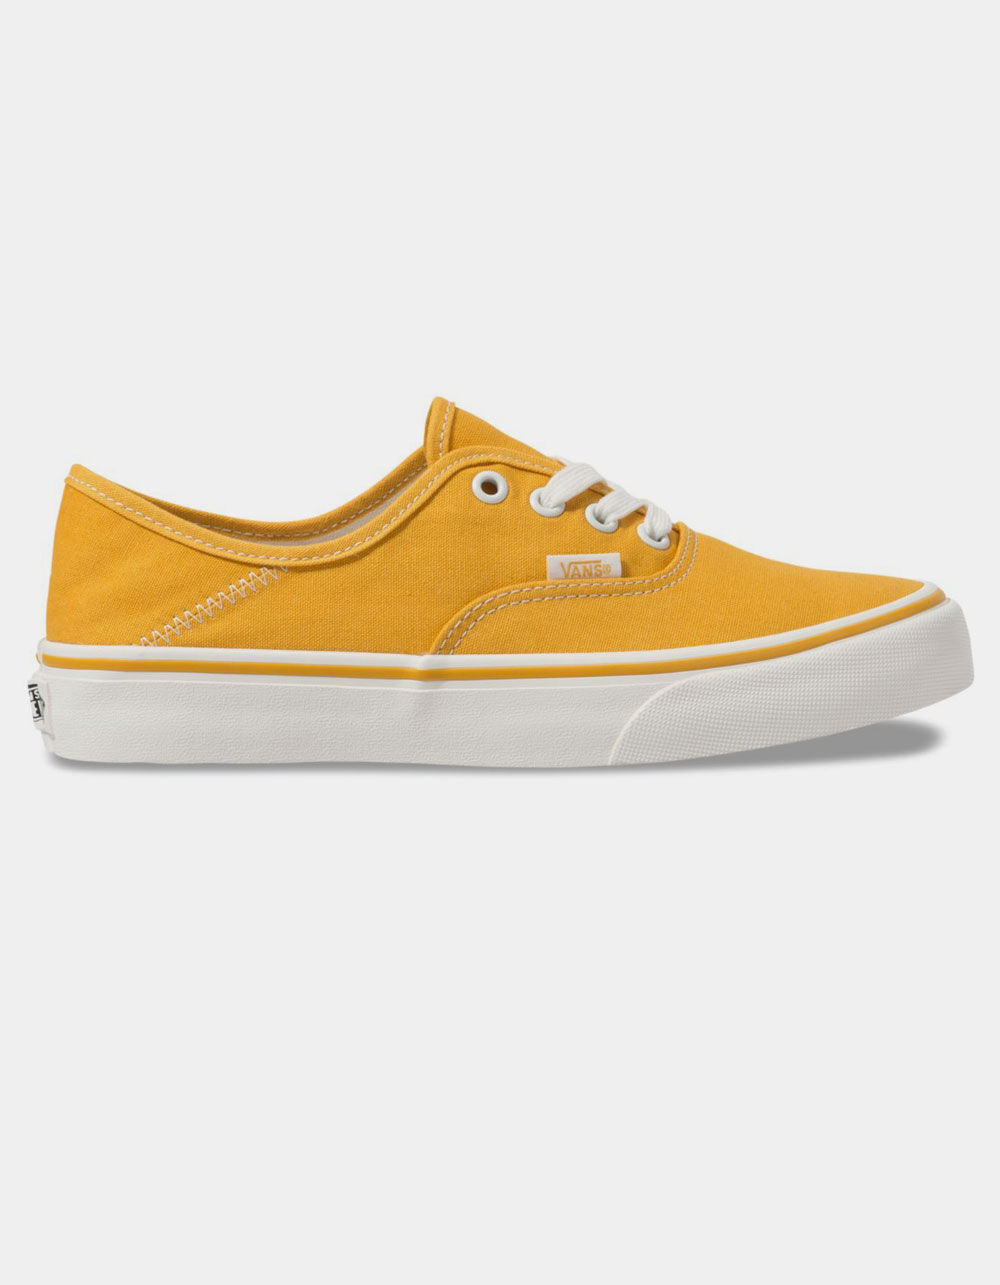 VANS Canvas Authentic SF Mango Mojito & Marshmallow Shoes